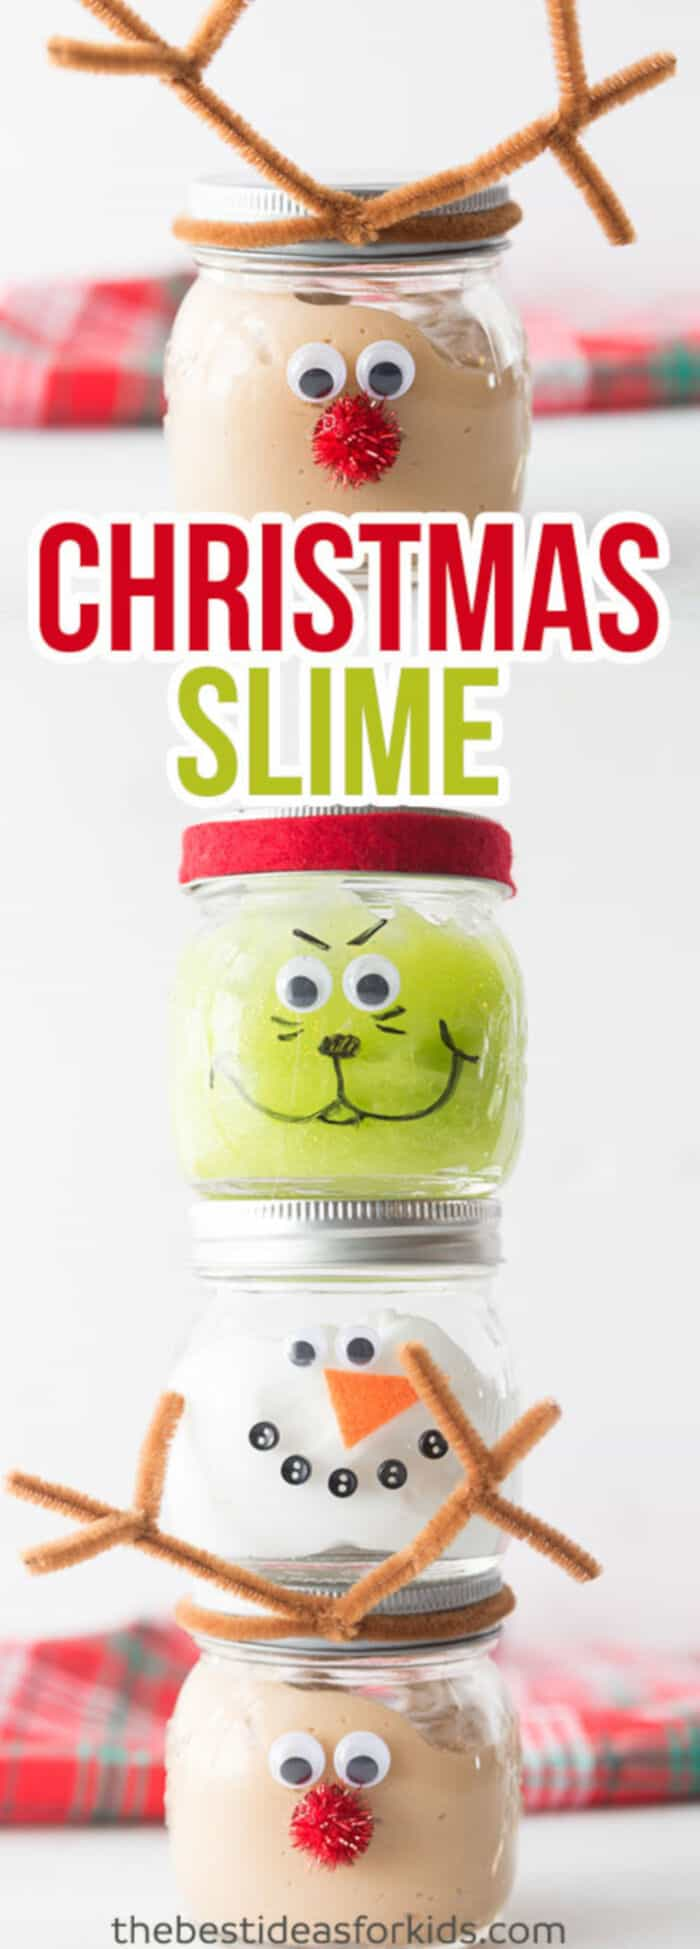 Christmas Slime Recipe by The Best Ideas for Kids